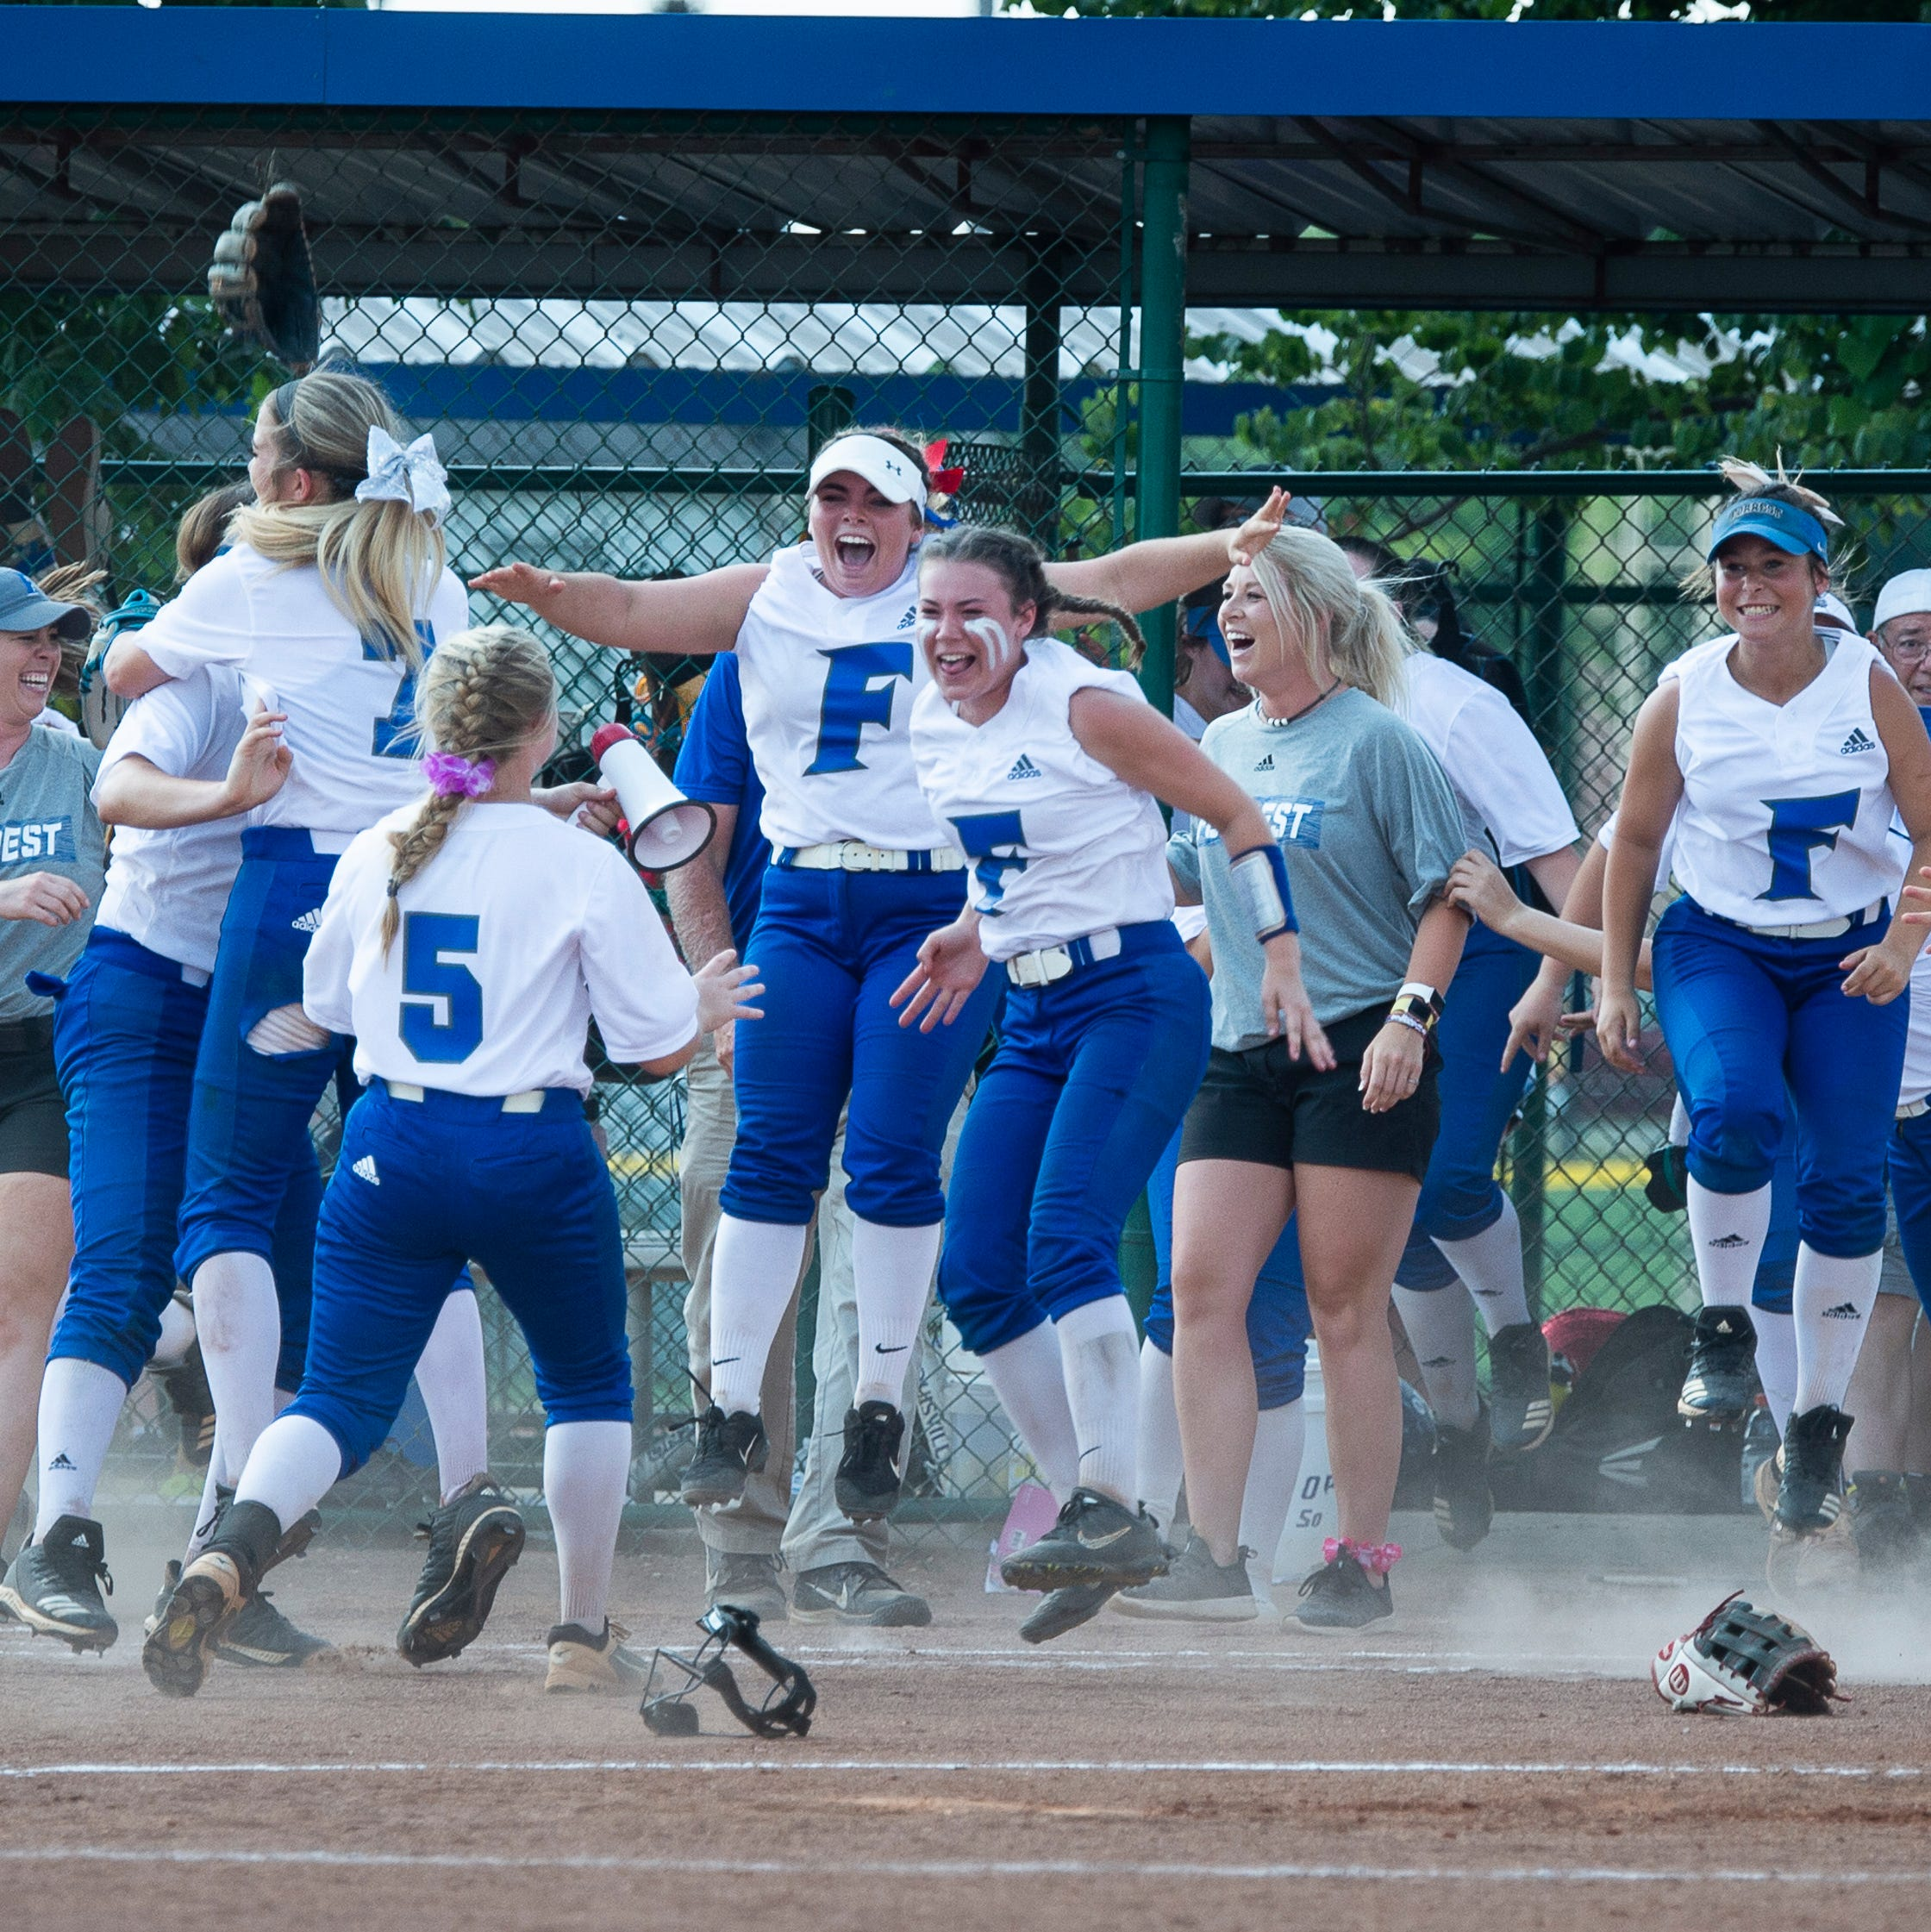 TSSAA Spring Fling 2019: Kennedy Gillespie's homer gives Forrest softball third state title